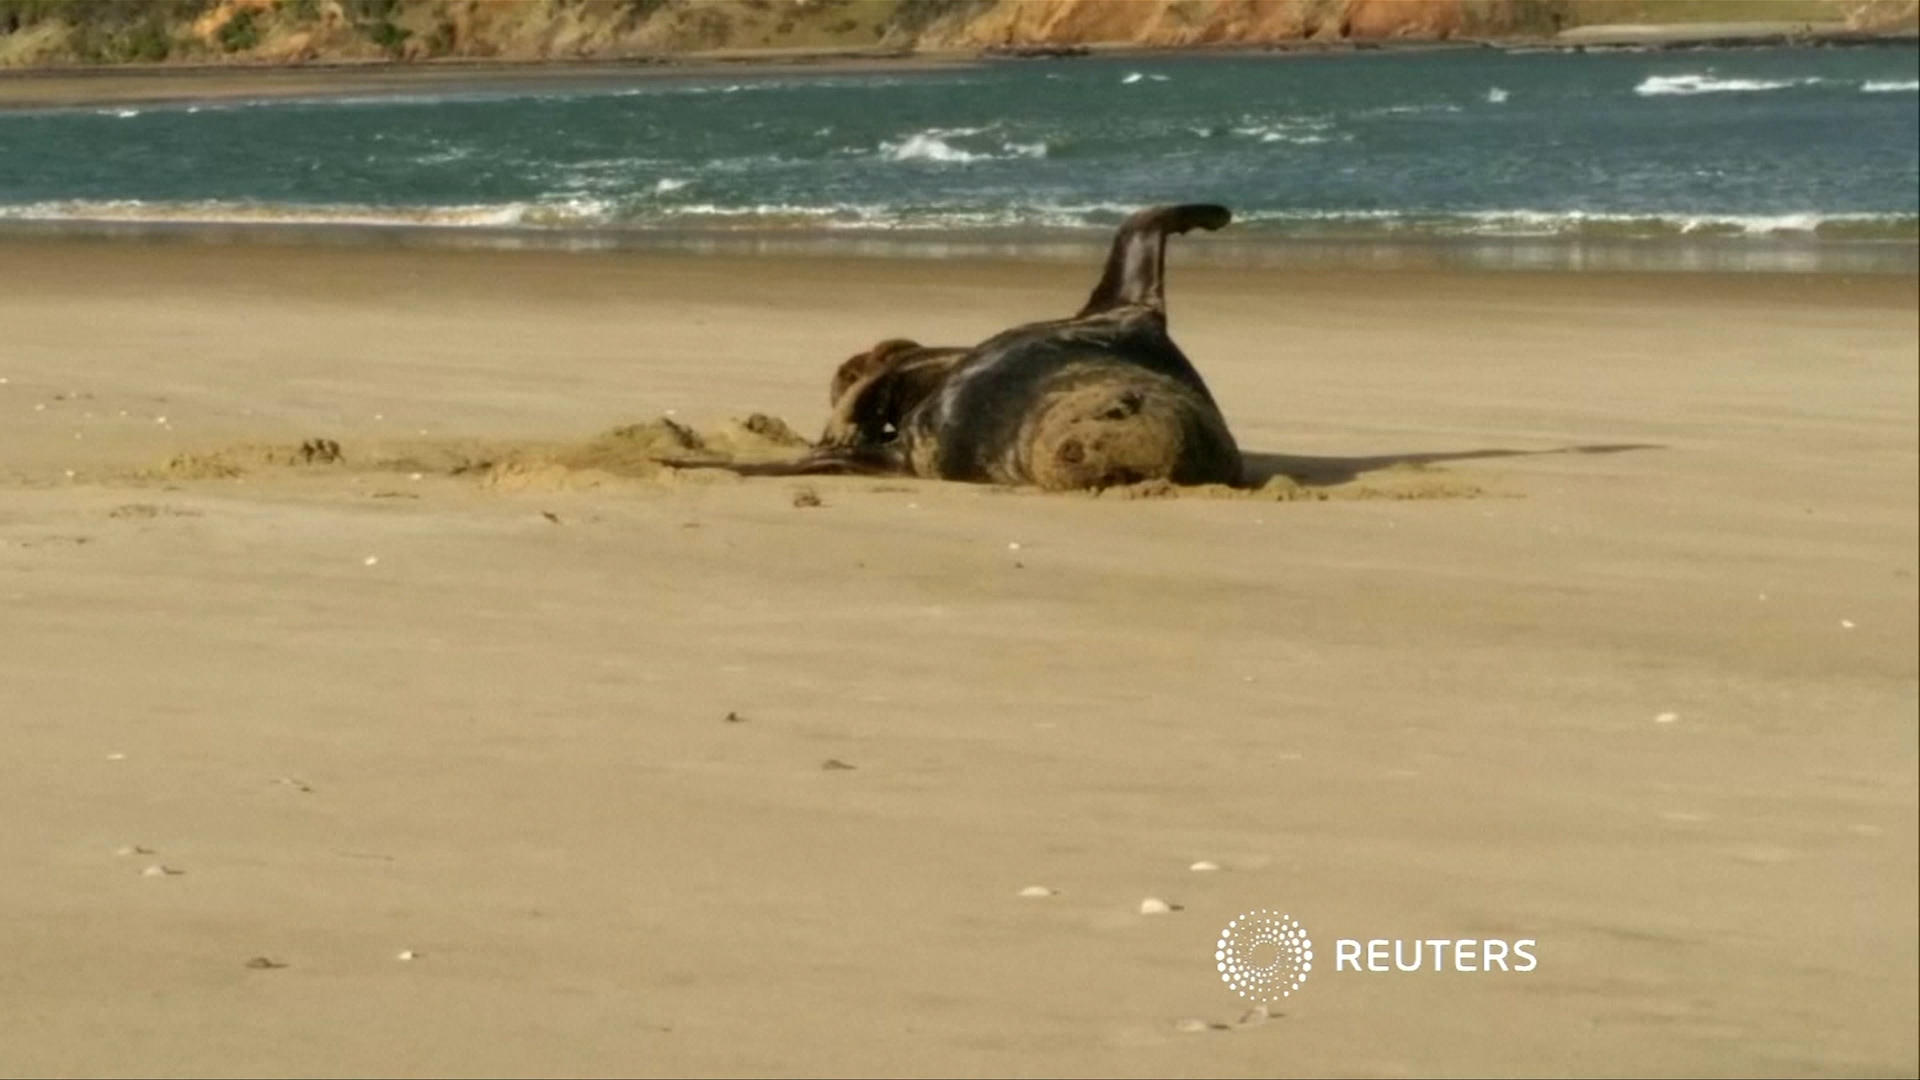 Surprising find for NIWA scientists in year-old seal poo